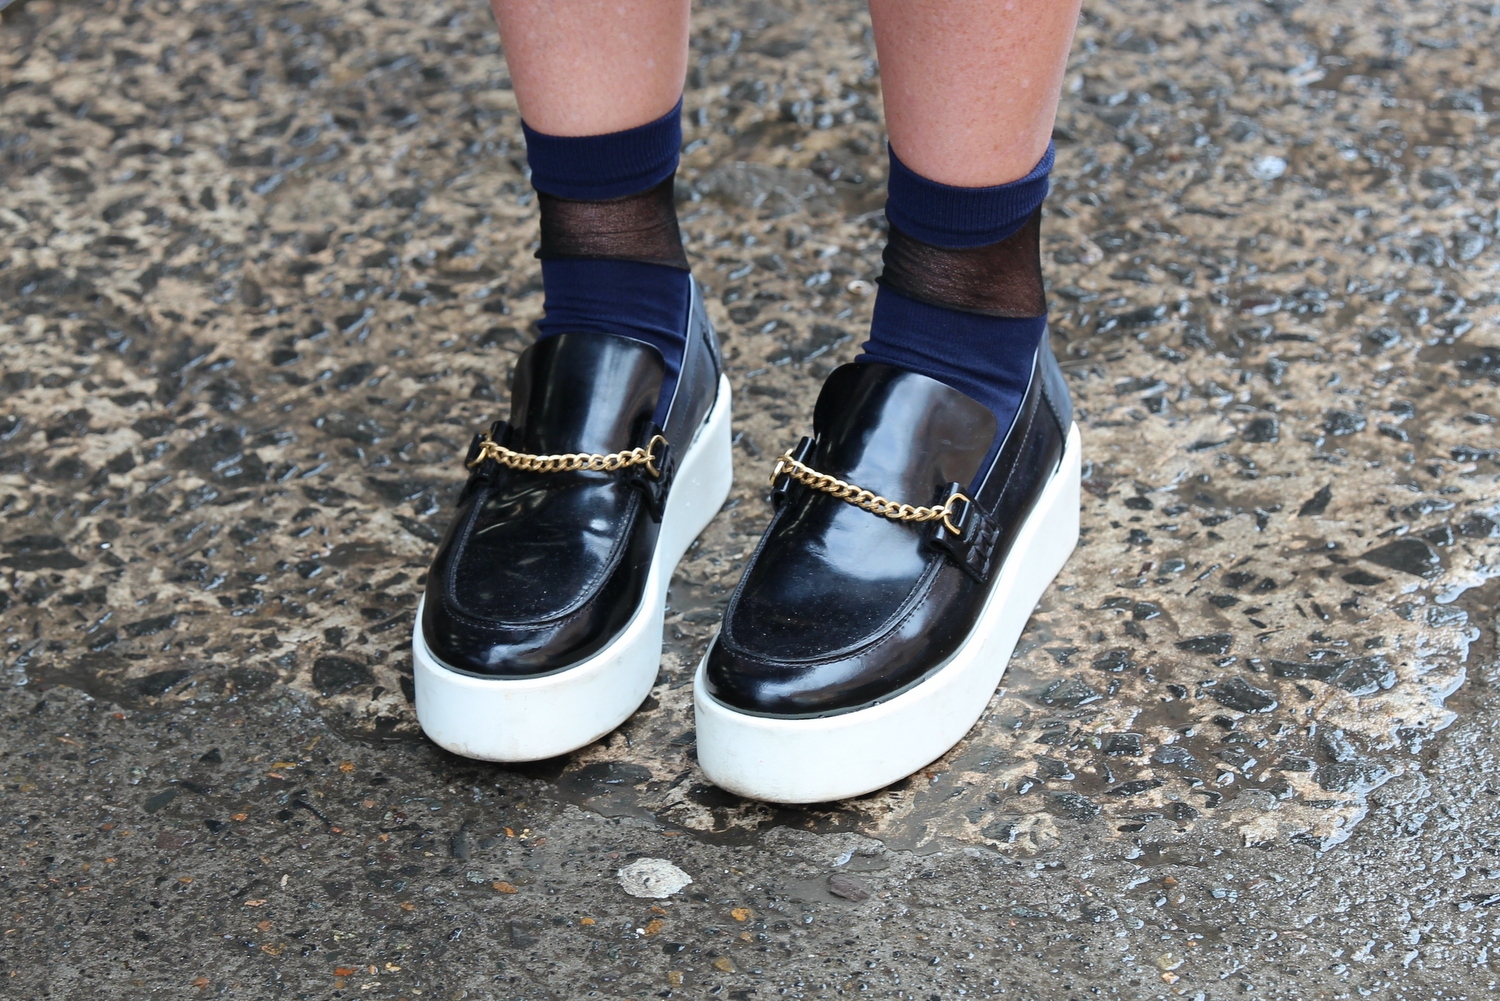 AMANDA SHADFORTH IN BLACK SHOES WITH CHAIN DETAIL